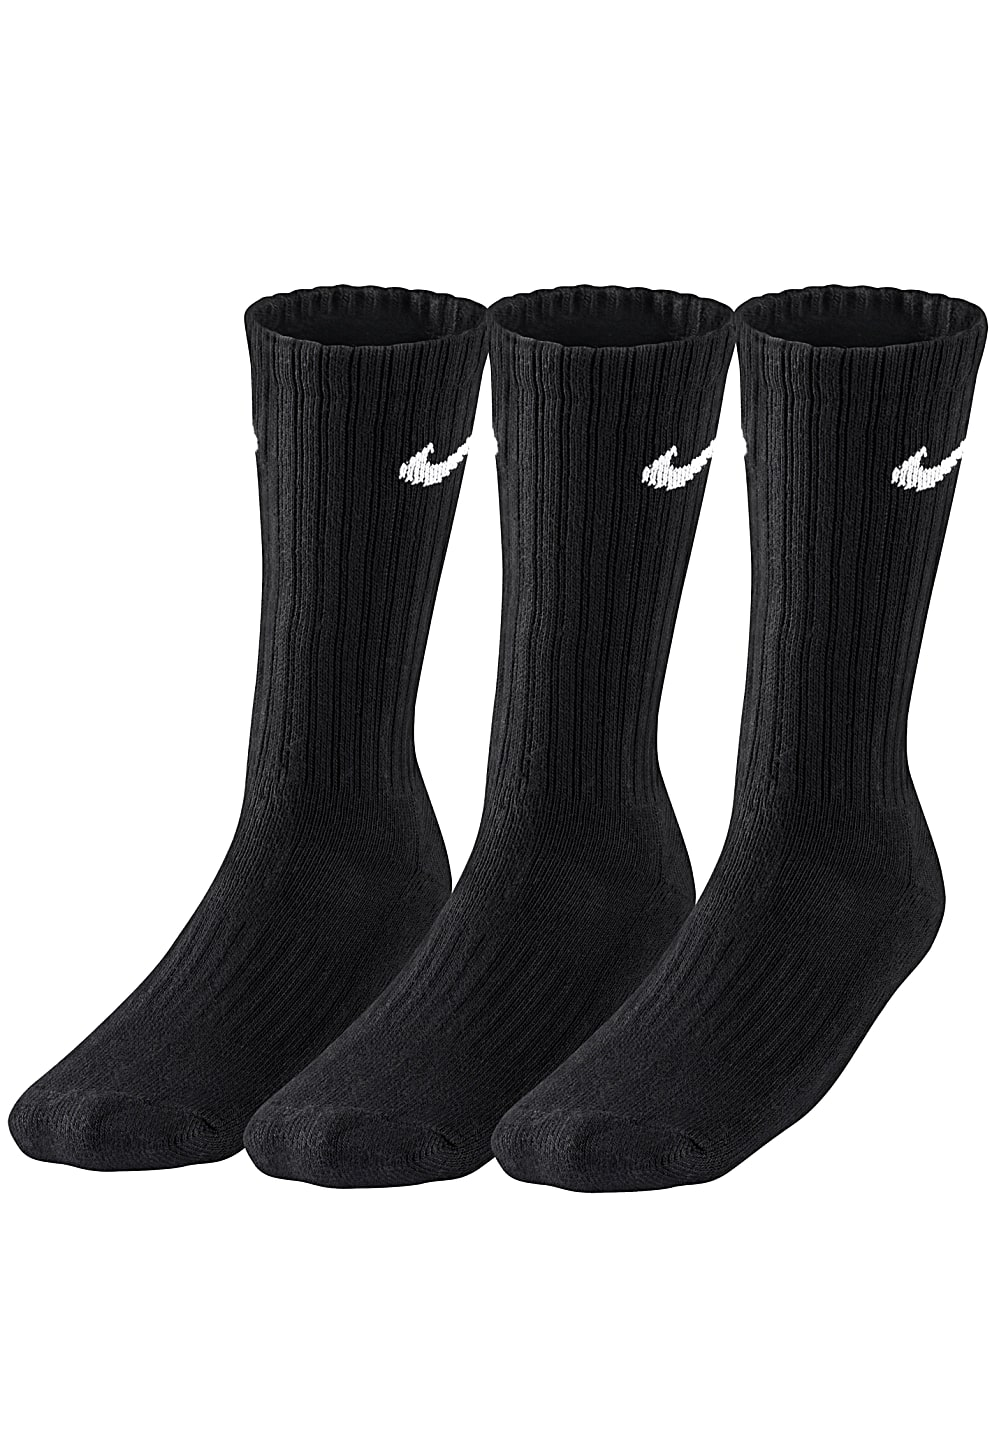 Nike Sportswear Value Cotton Crew 3 Pack - Socken für Herren - Schwarz